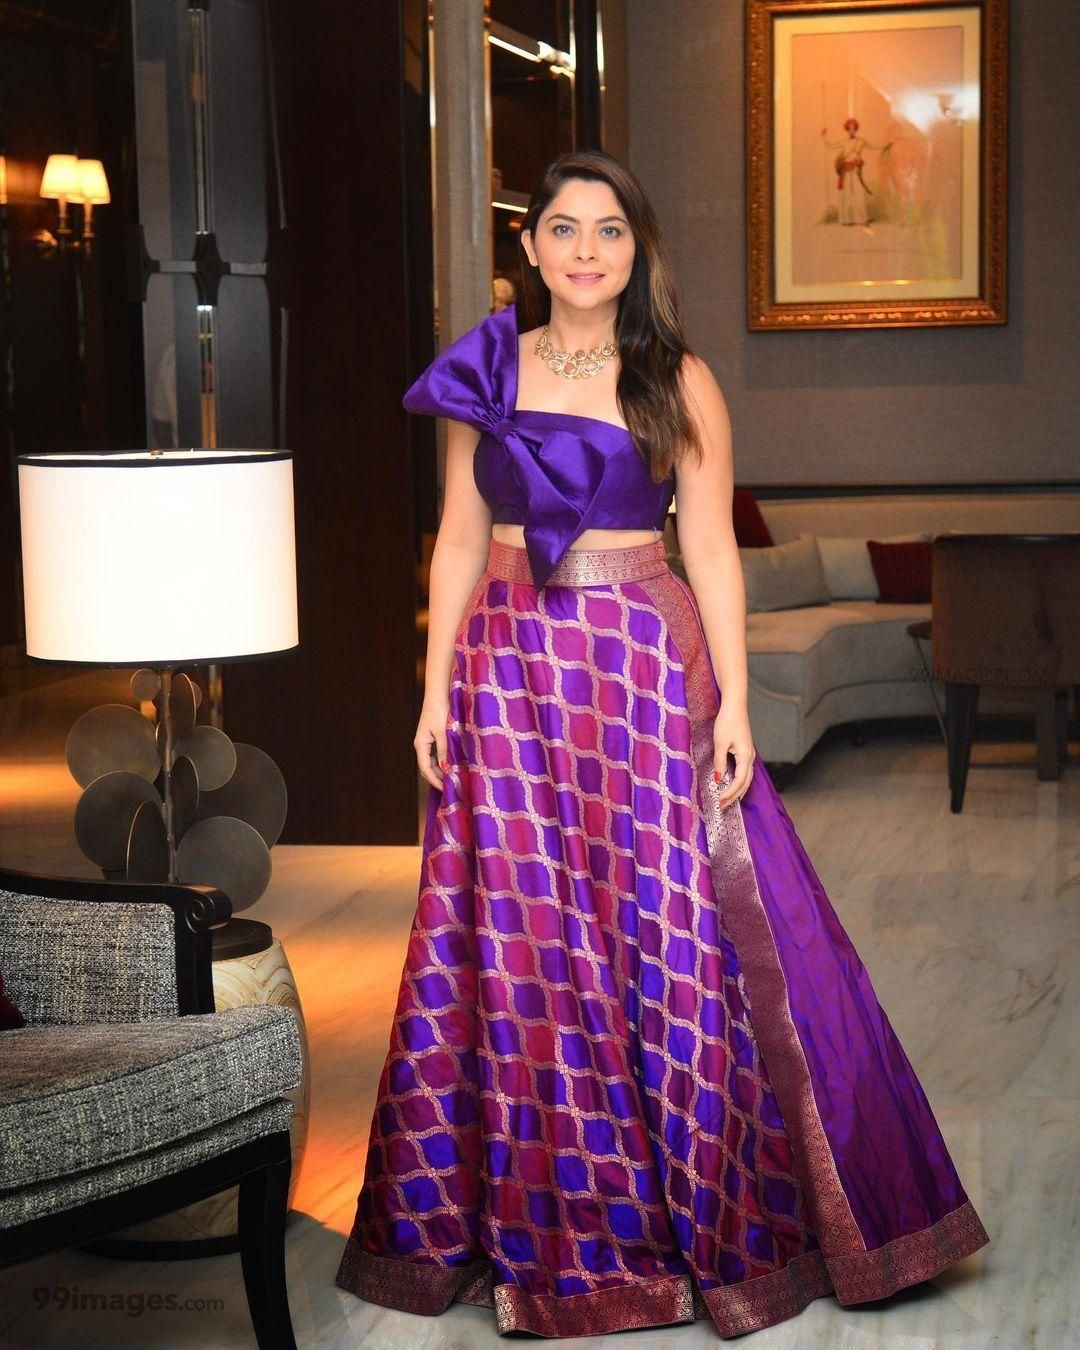 Sonalee Kulkarni Hot HD Photos & Mobile Wallpapers (1080p) (705067) - Sonalee Kulkarni